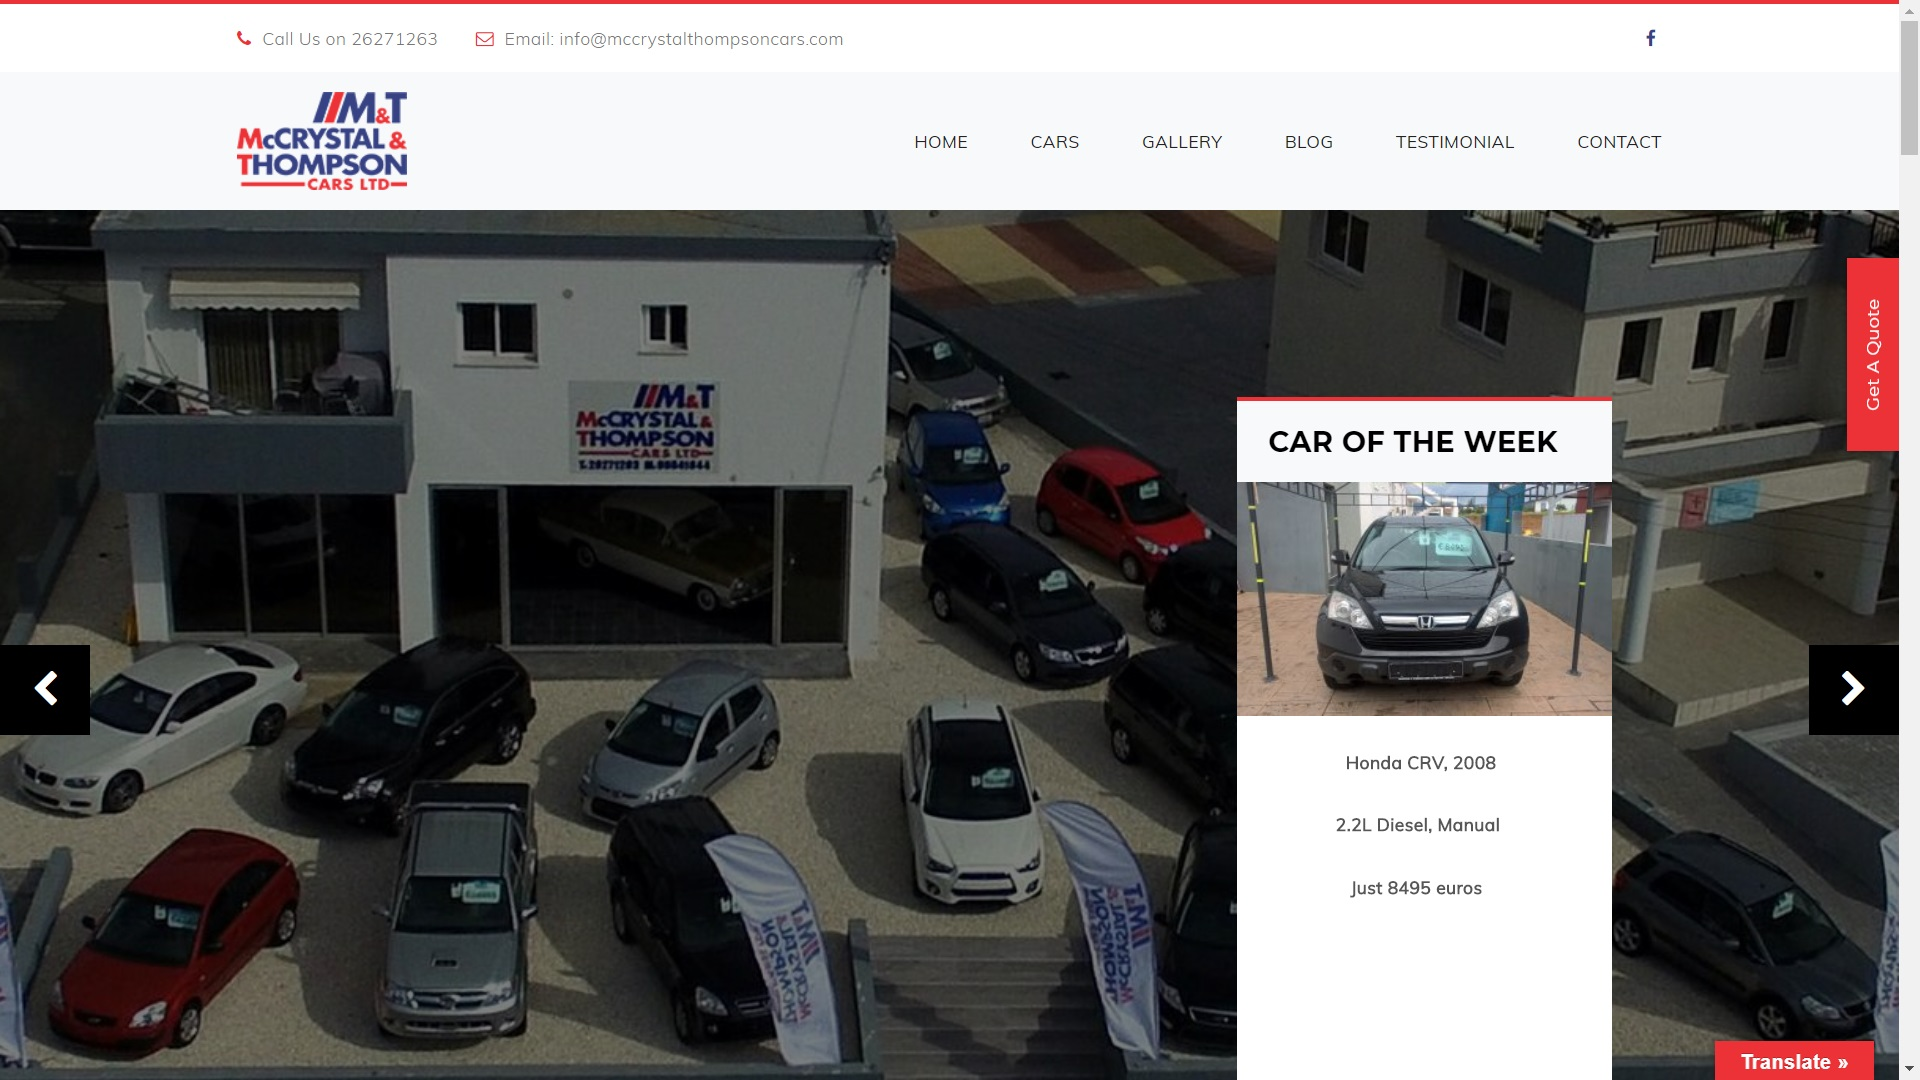 MCCRYSTALTHOMPSONCARS.COM